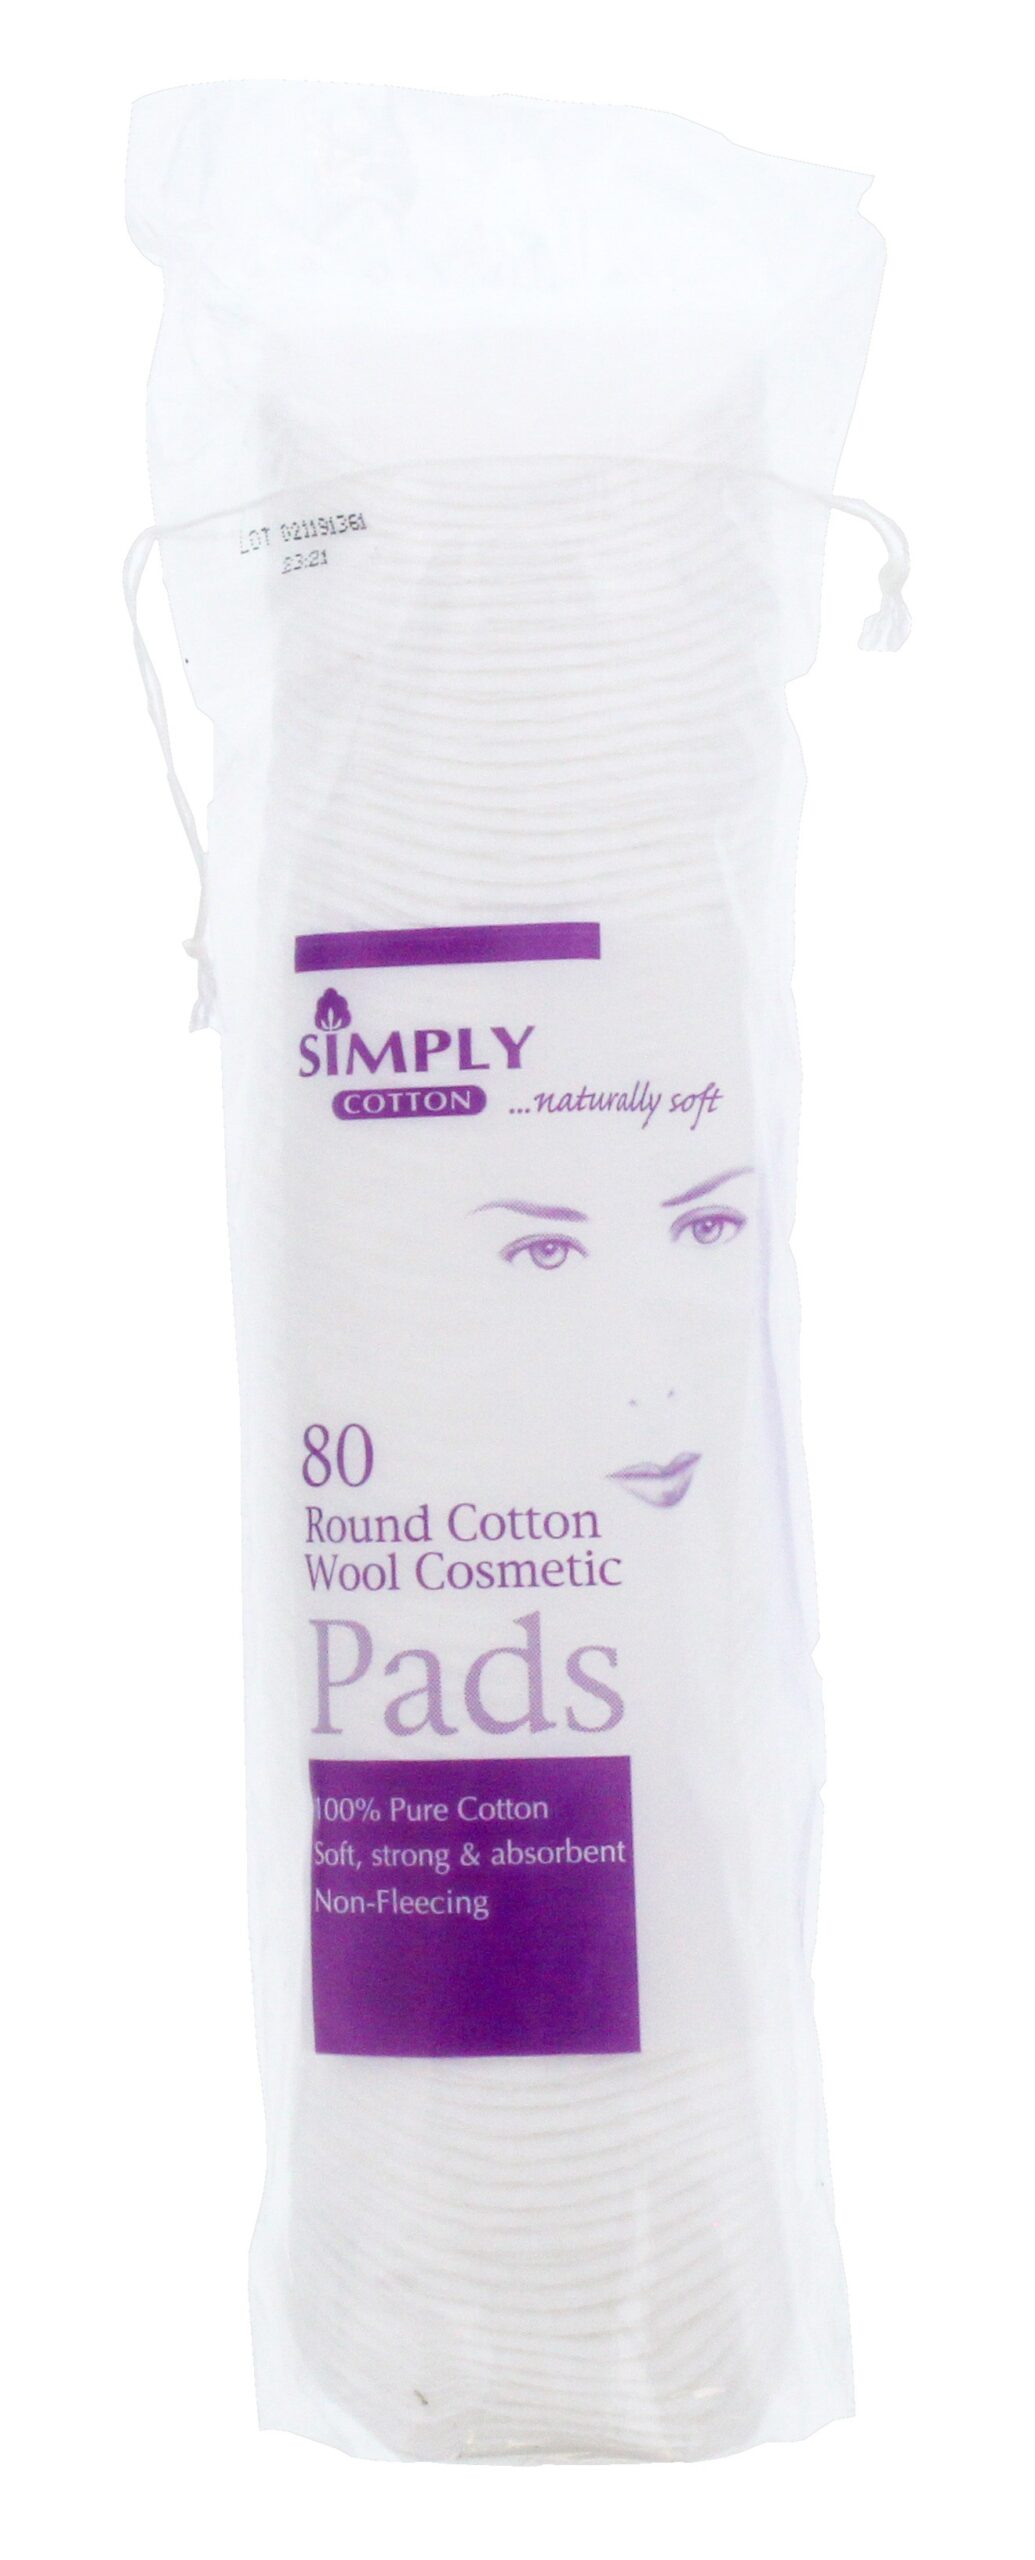 SIMPLY COTTON ROUND COSMETIC PADS 80S